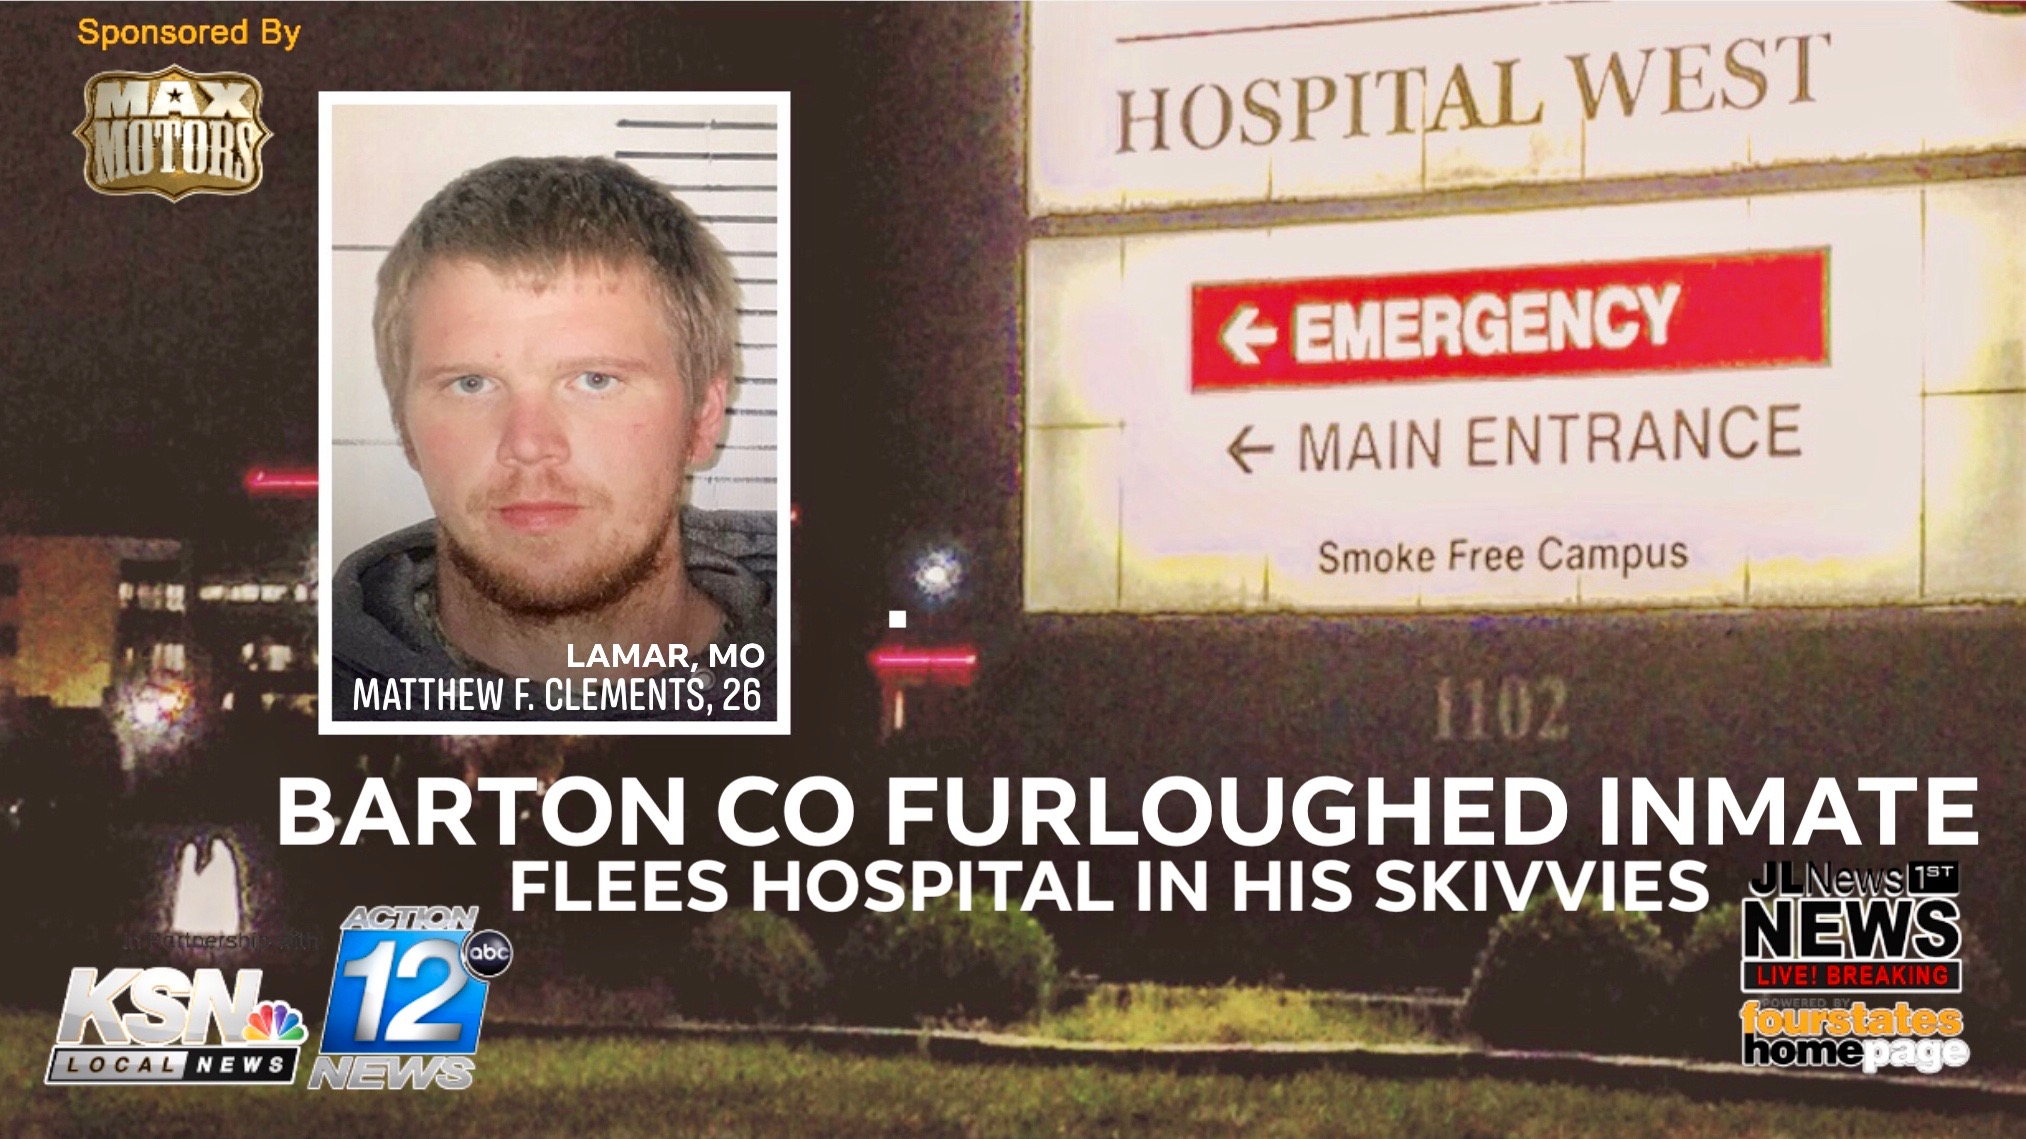 Barton Co furloughed inmate flees hospital in his skivvies